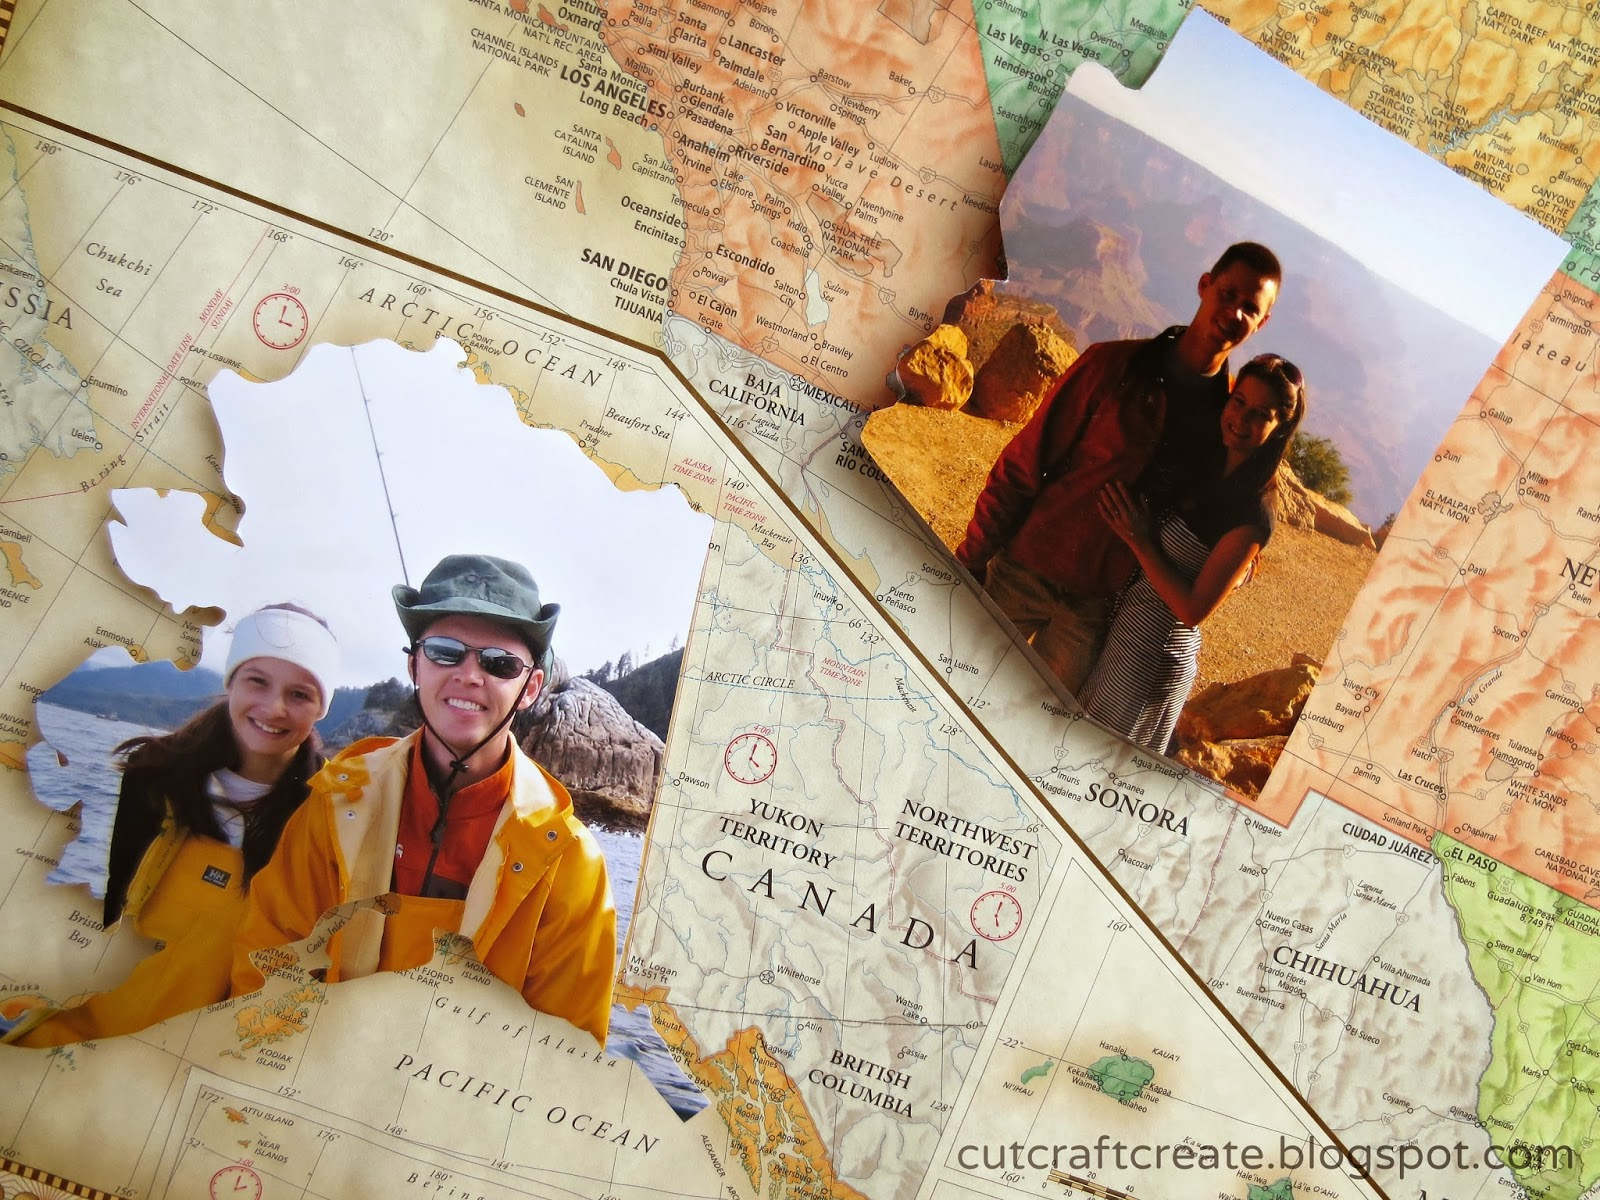 Cut Craft Create Personalized Photo Map for our Paper Anniversary – Personalized Travel Maps